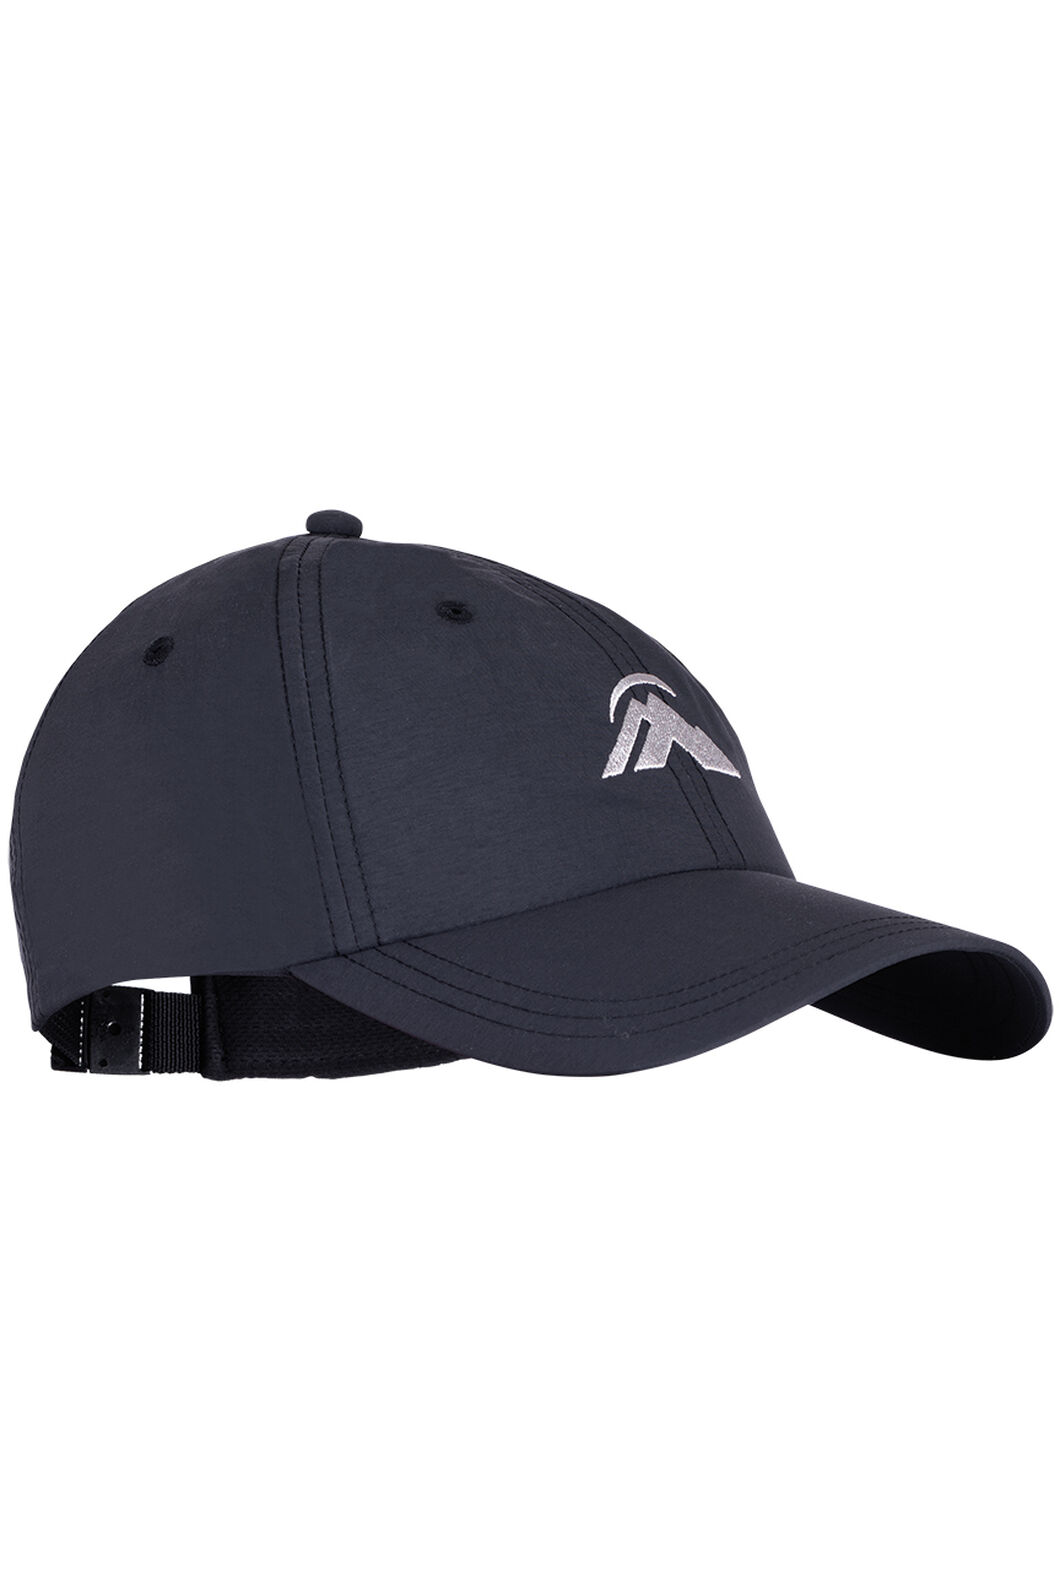 Macpac Mini Hiker Cap, Black, hi-res